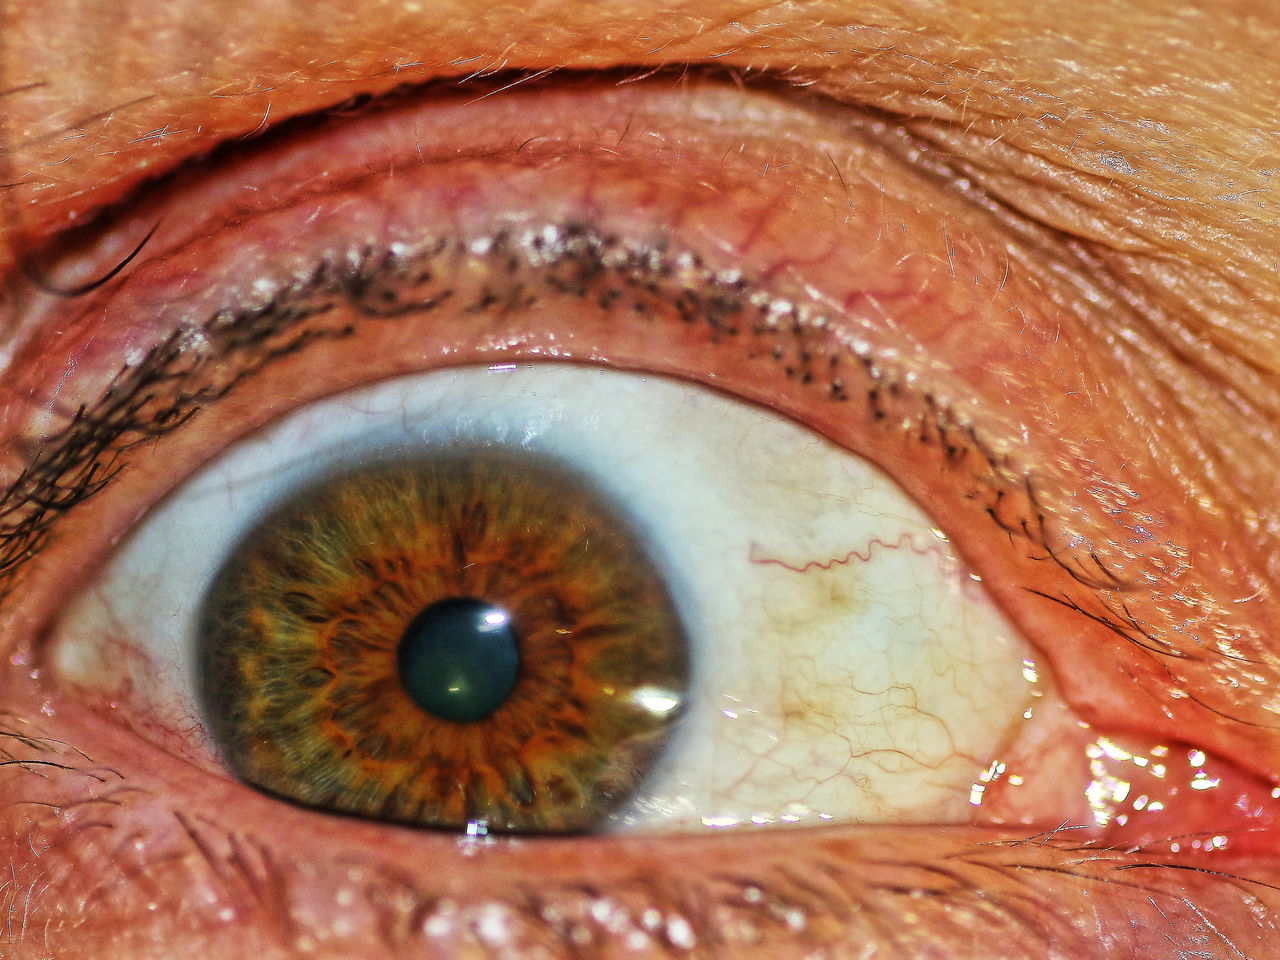 Cropped Extreme Close-up Eyelash Human Eye Human Skin Macro Occhi Selective Focus 479